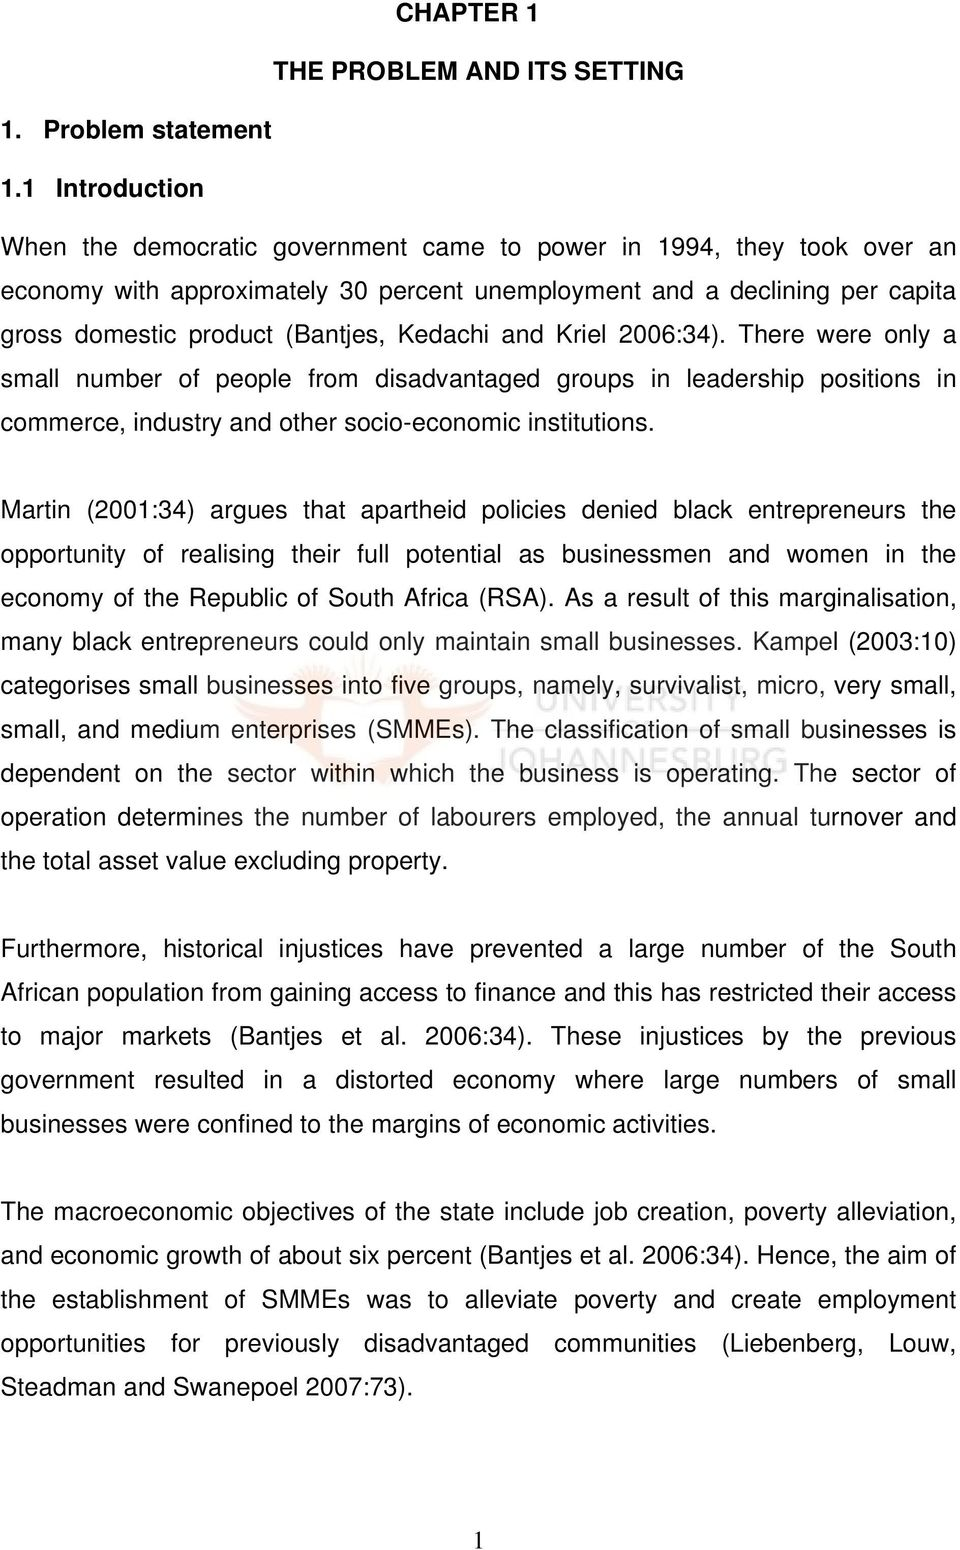 Kedachi and Kriel 2006:34). There were only a small number of people from disadvantaged groups in leadership positions in commerce, industry and other socio-economic institutions.